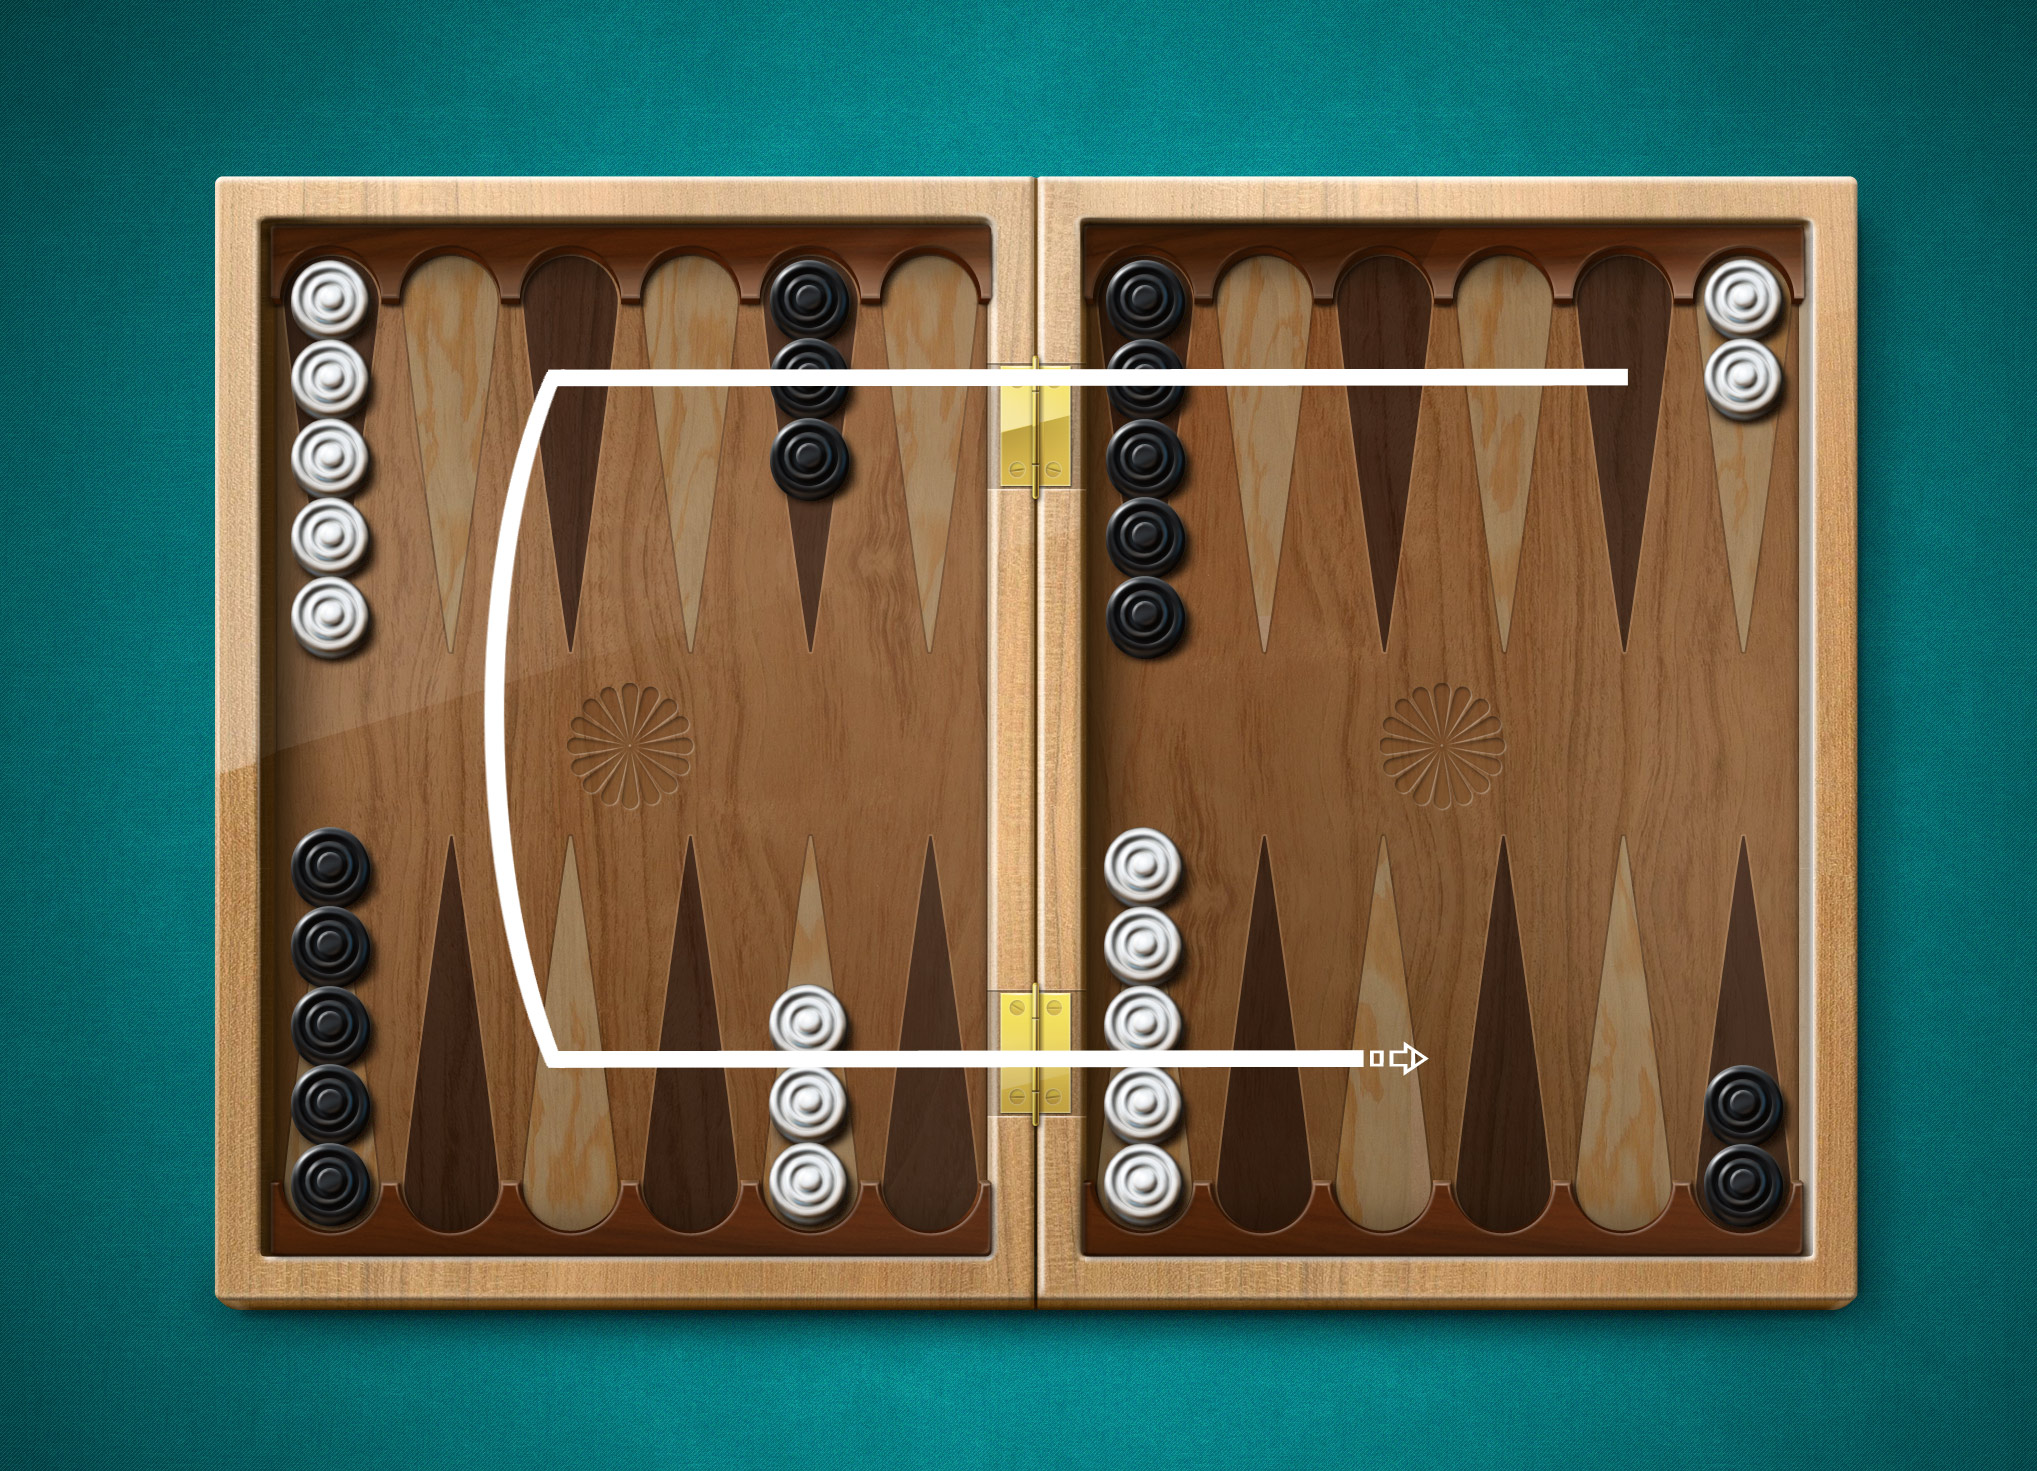 Board of backgammon